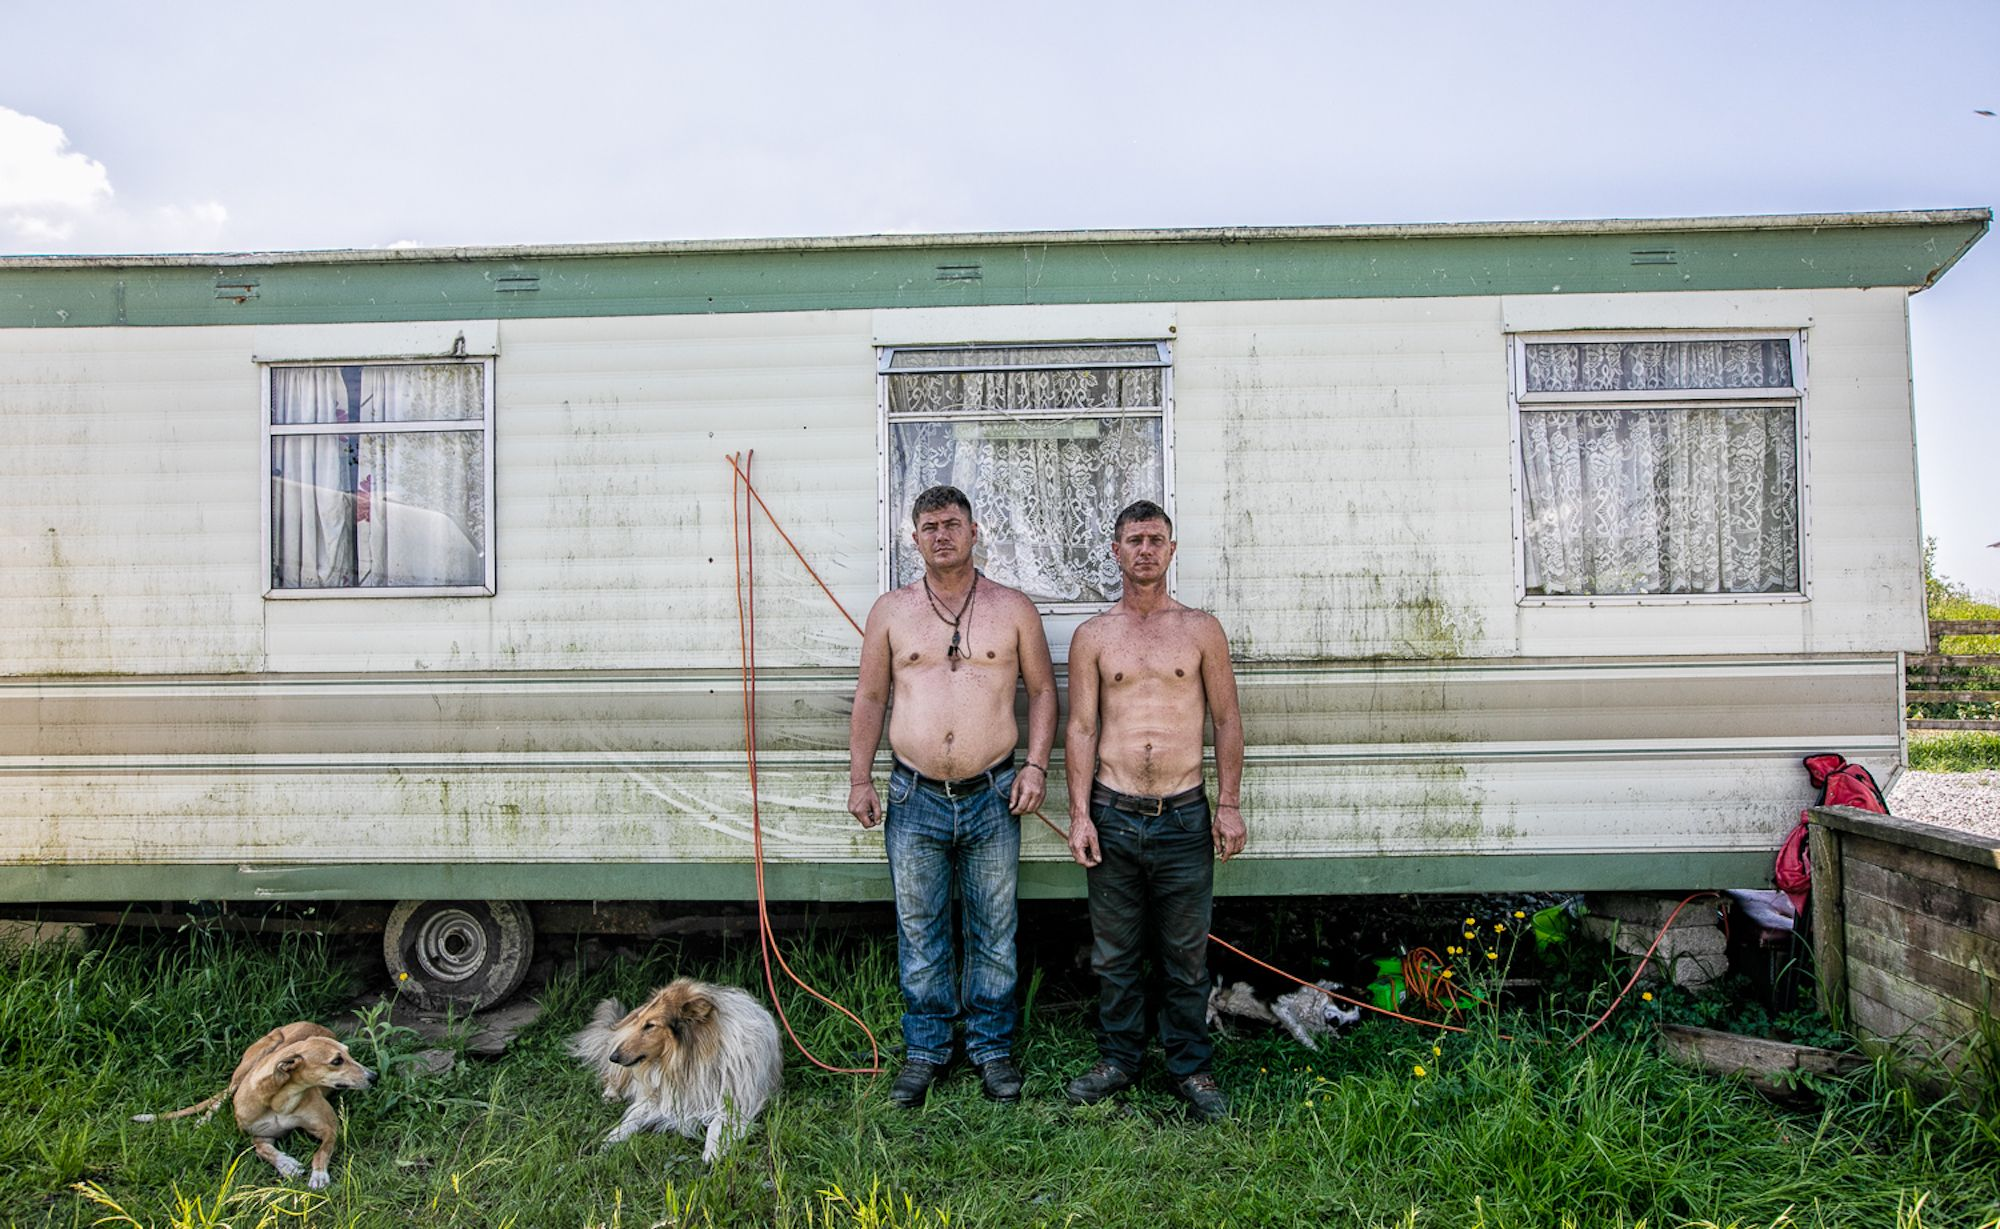 https://sparksgallery.com/wp-content/uploads/2018/10/Zousmer-Michele-Willie-and-Francie-Twins-Irish-Travellers.jpg